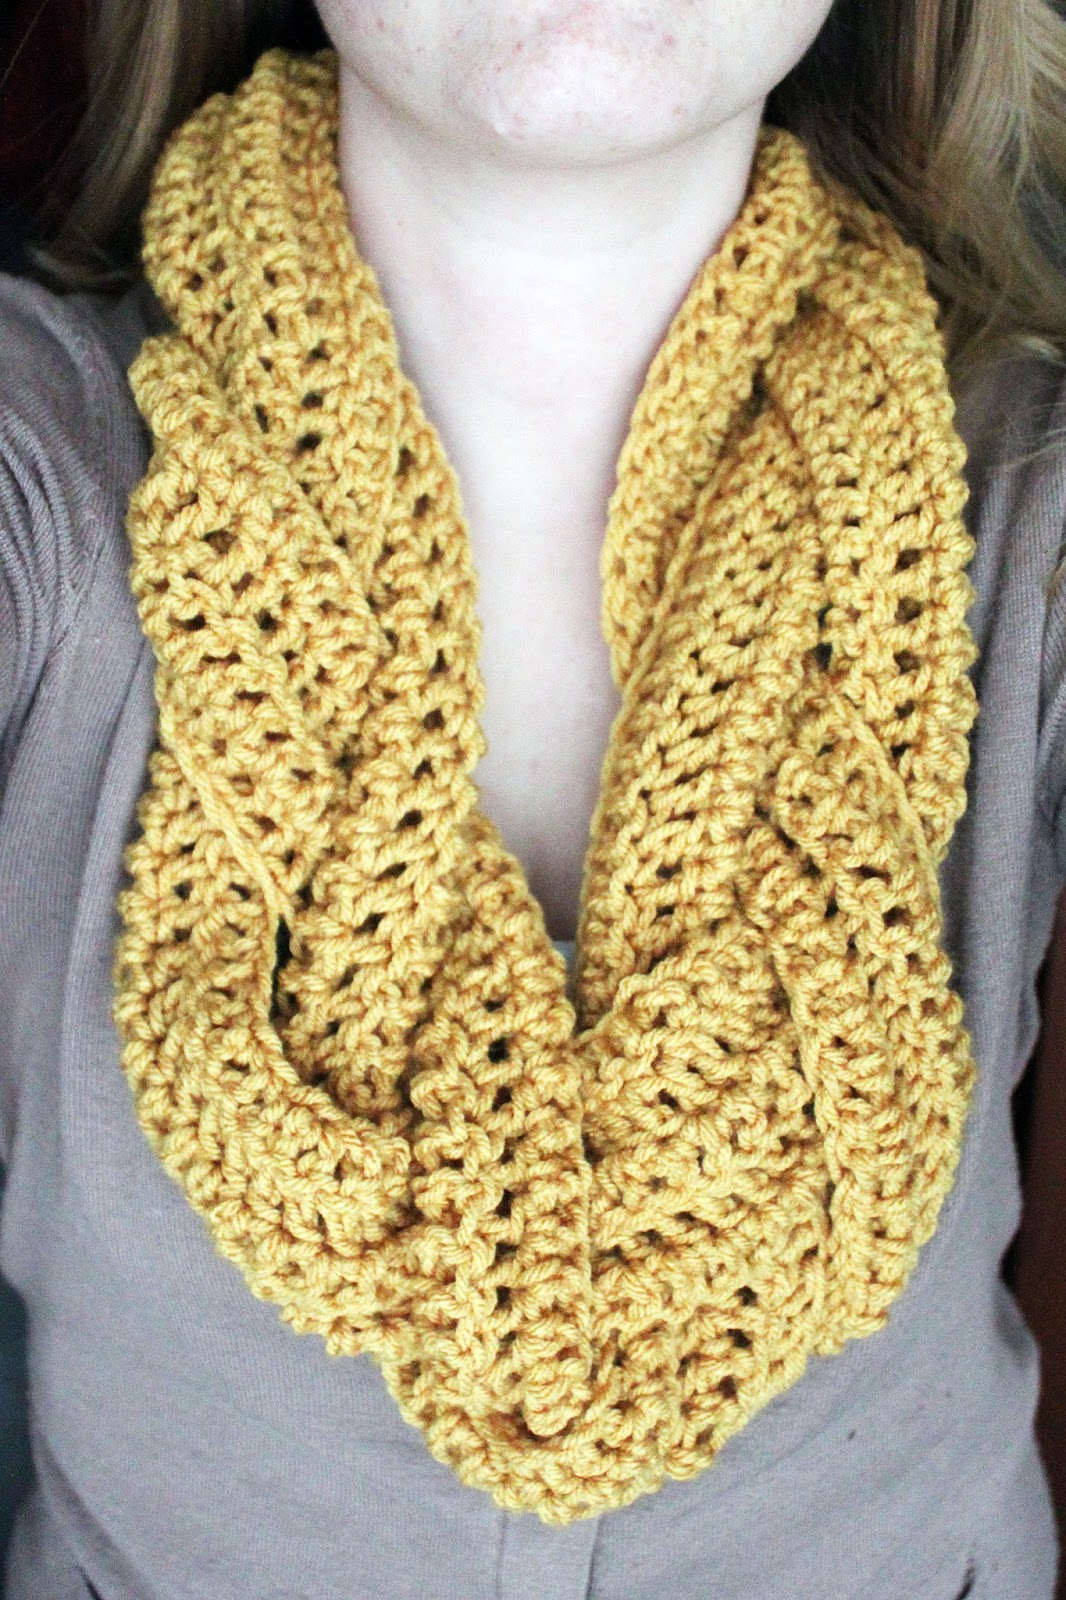 How To Crochet A Scarf : How To Crochet A Scarf Double crochet back onto the